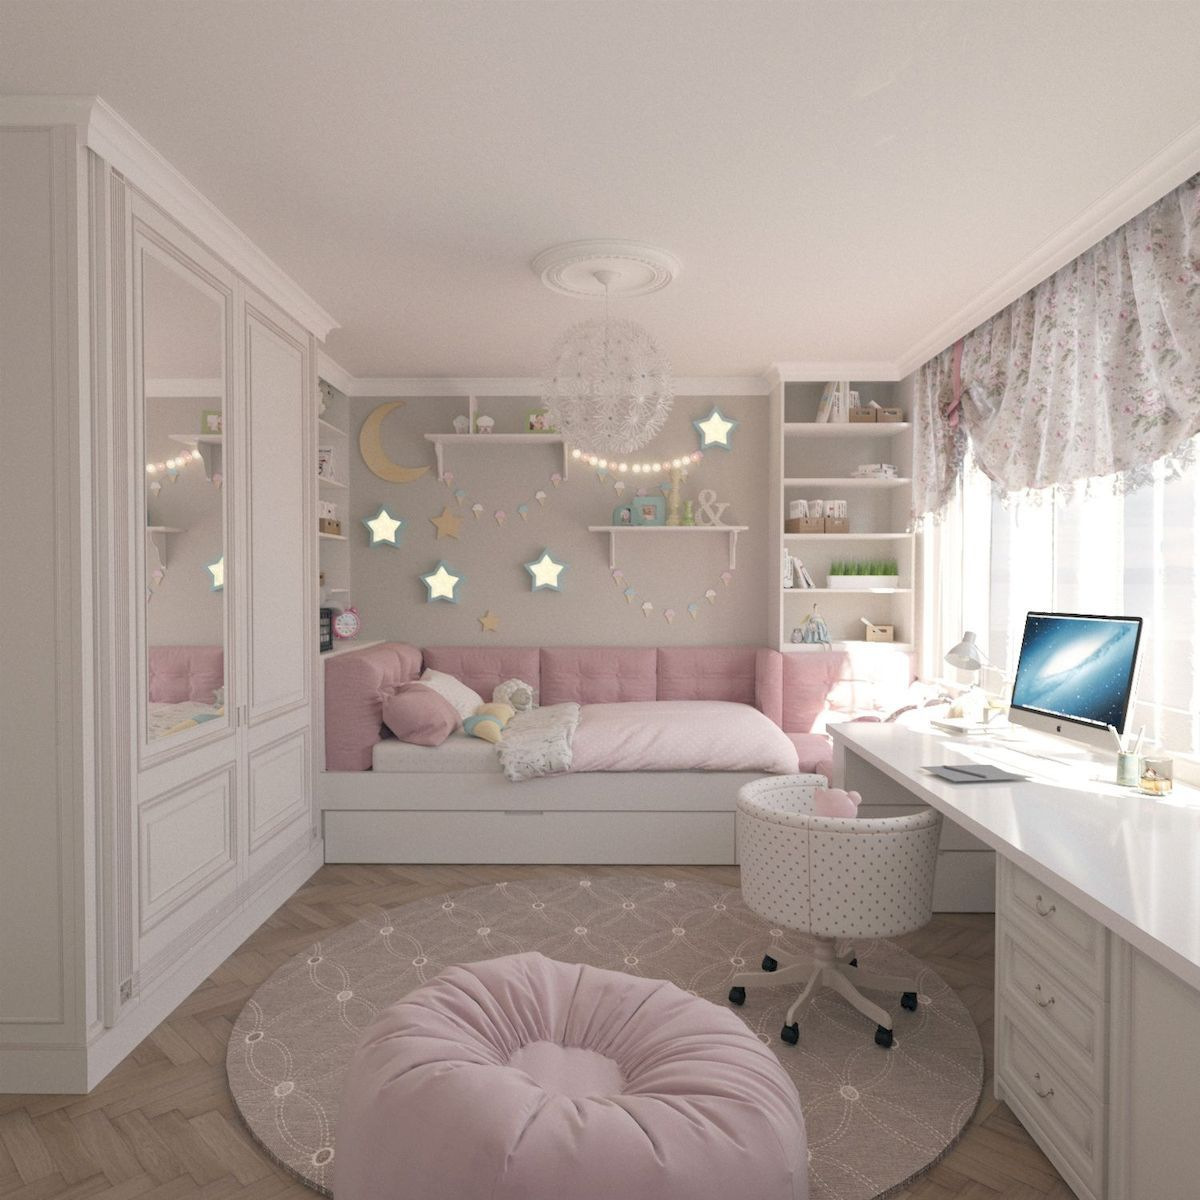 20 Decorating Tricks For Your Bedroom: Bedroom Themes, Cute Bedroom